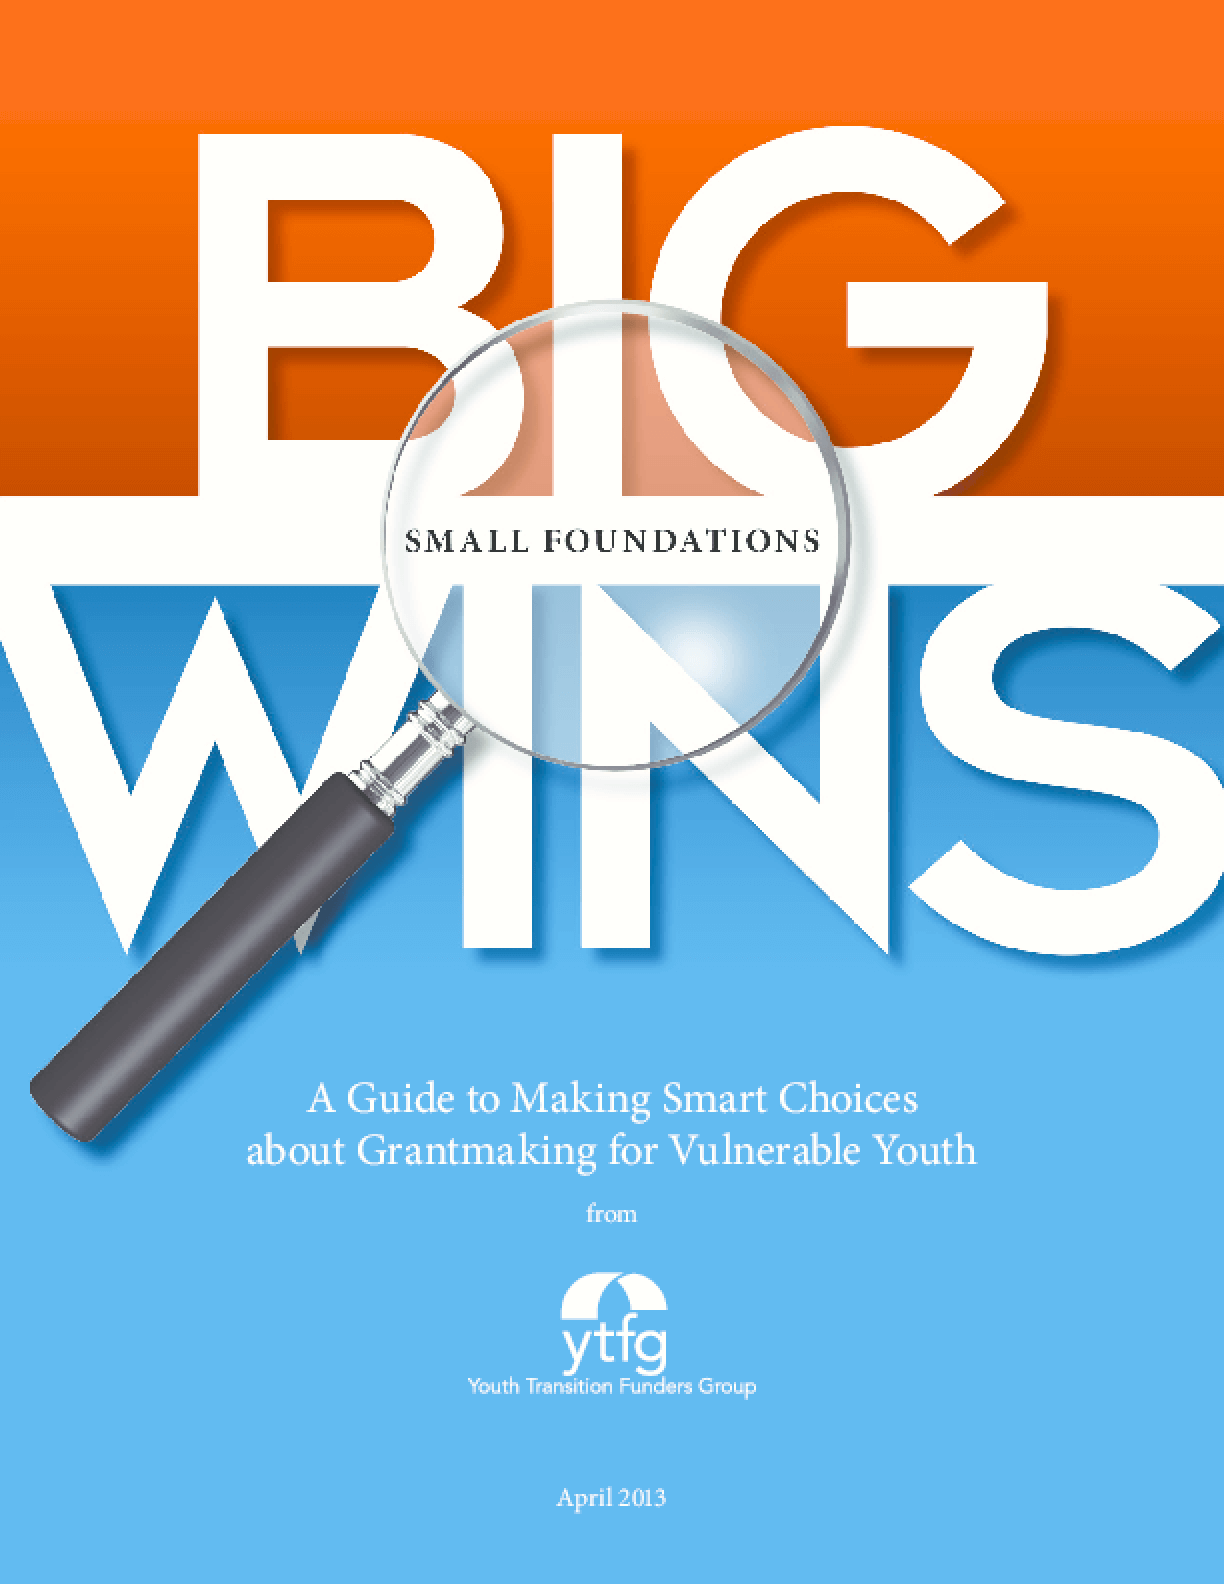 Big Wins, Small Foundations: A Guide to Making Smart Choices about Grantmaking for Vulnerable Youth